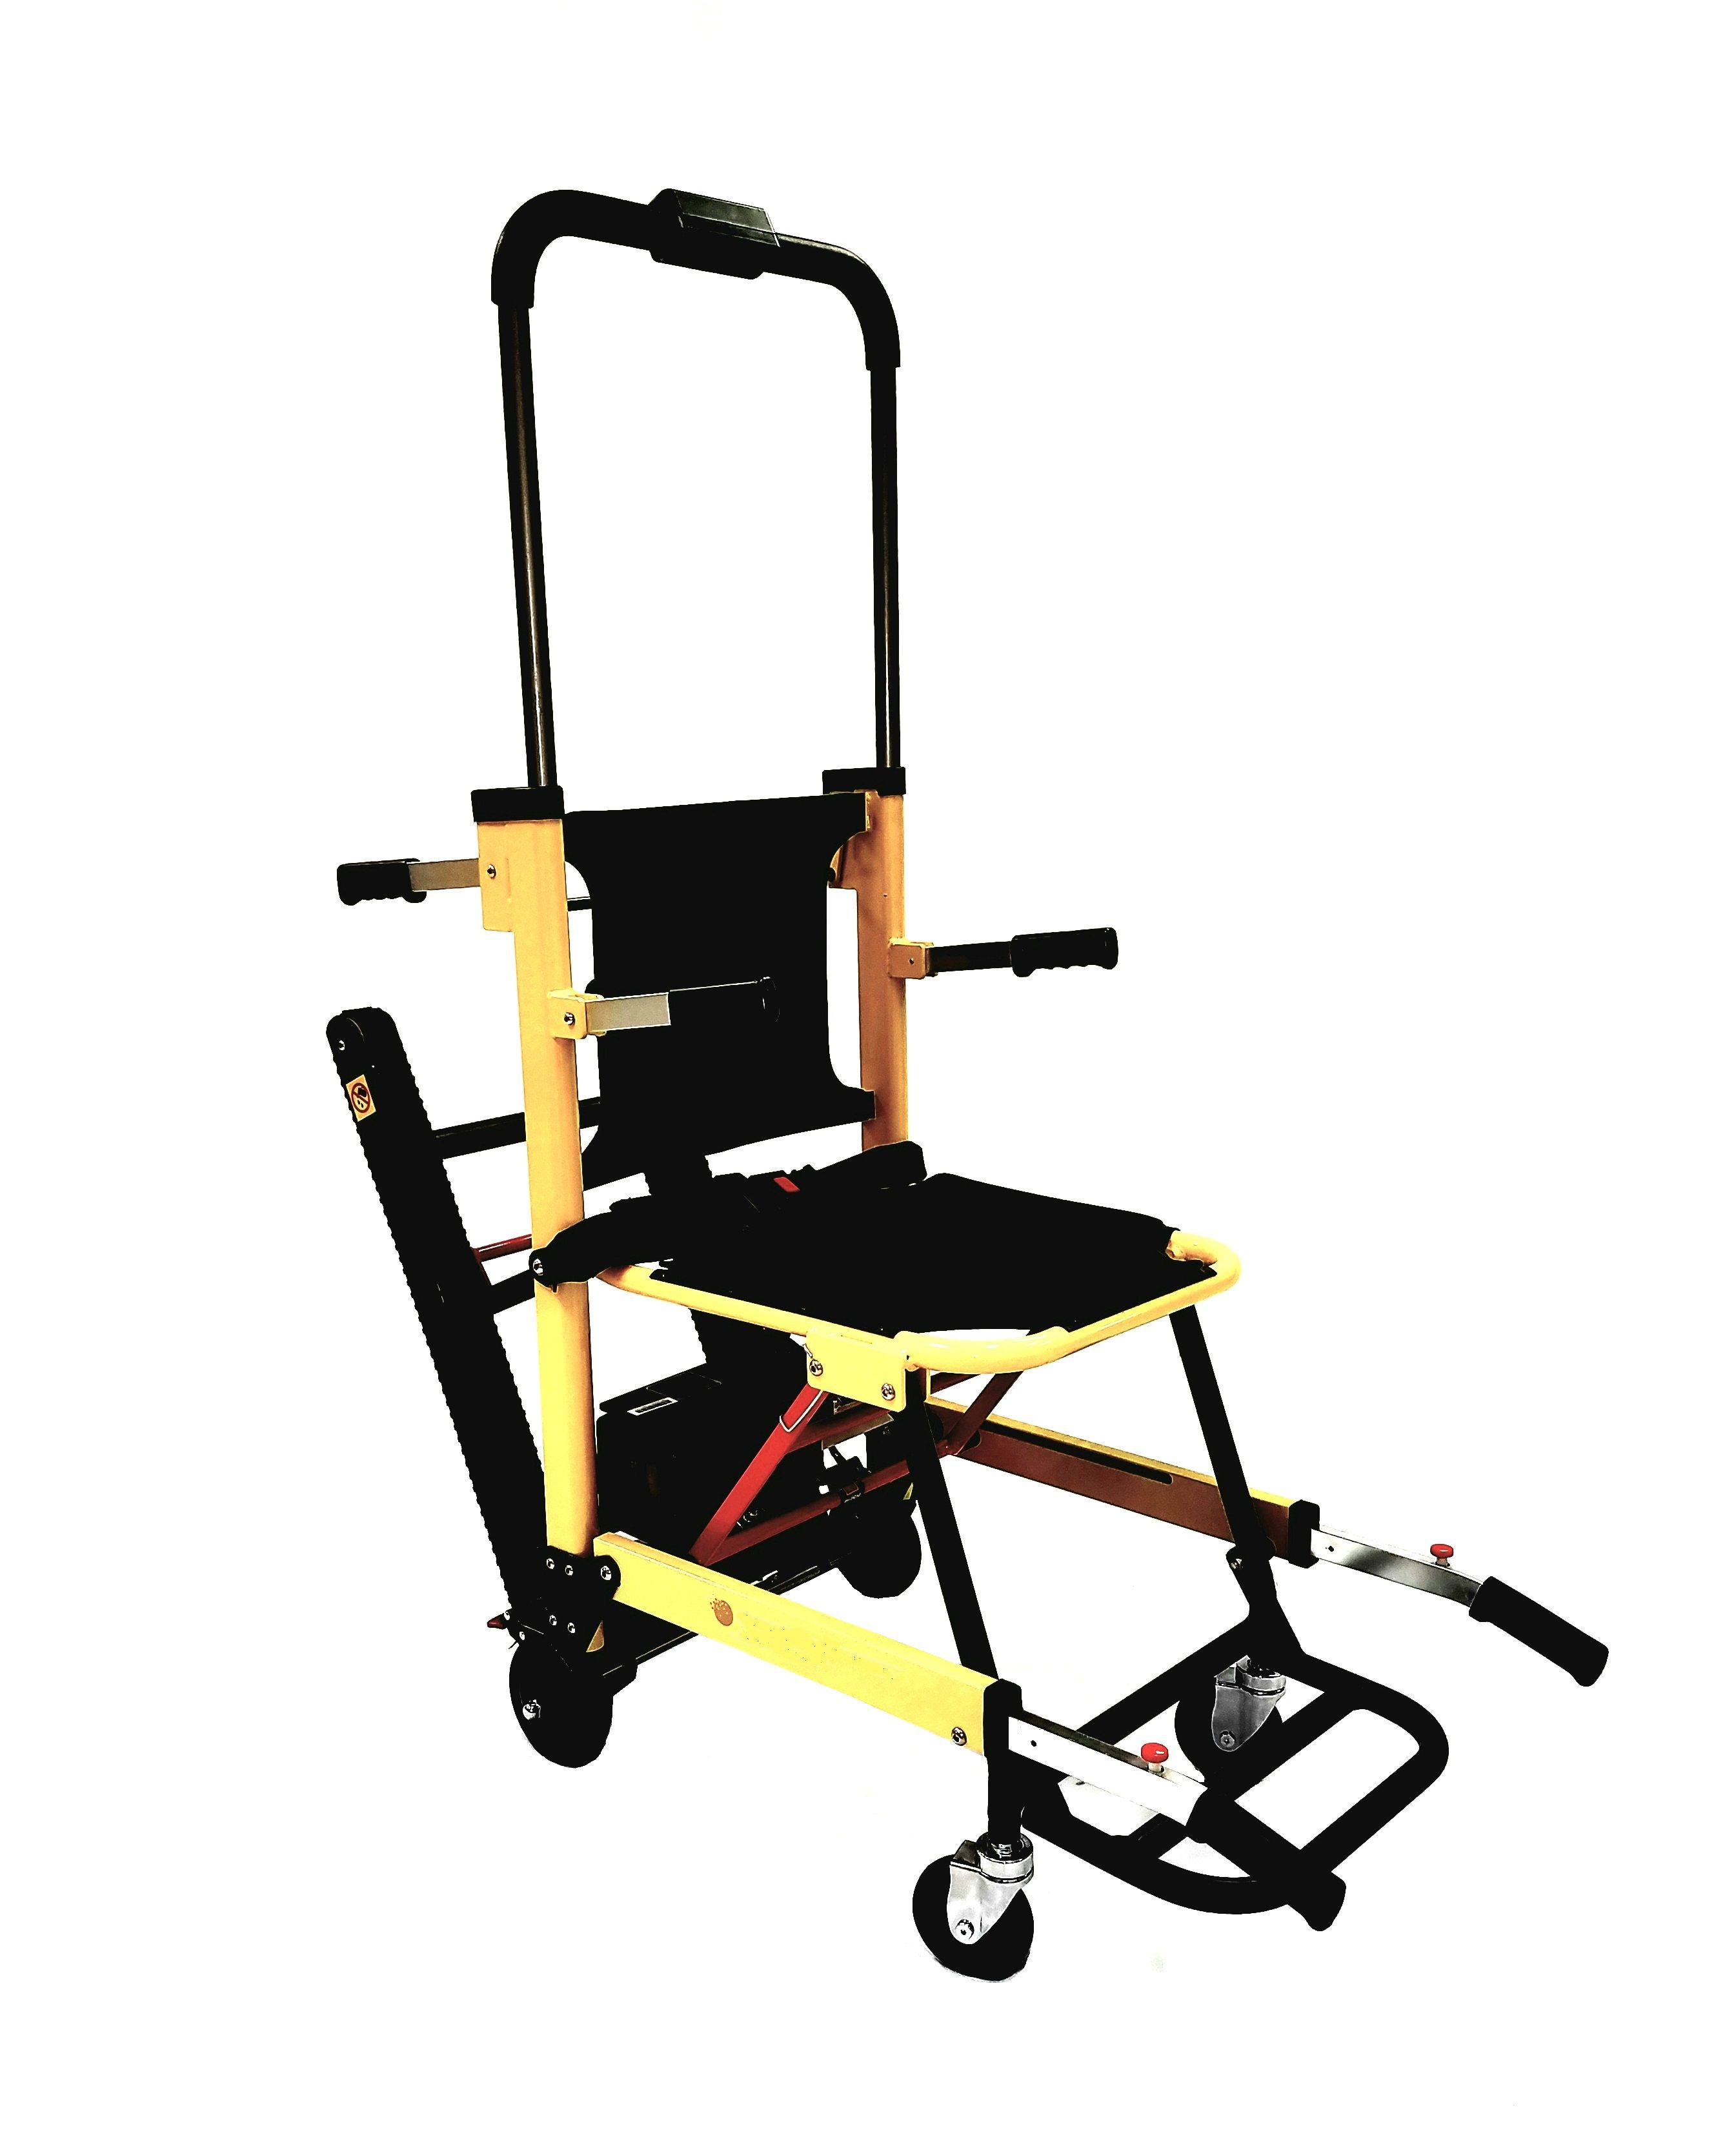 emergency stair chair. Fine Stair For Emergency Stair Chair